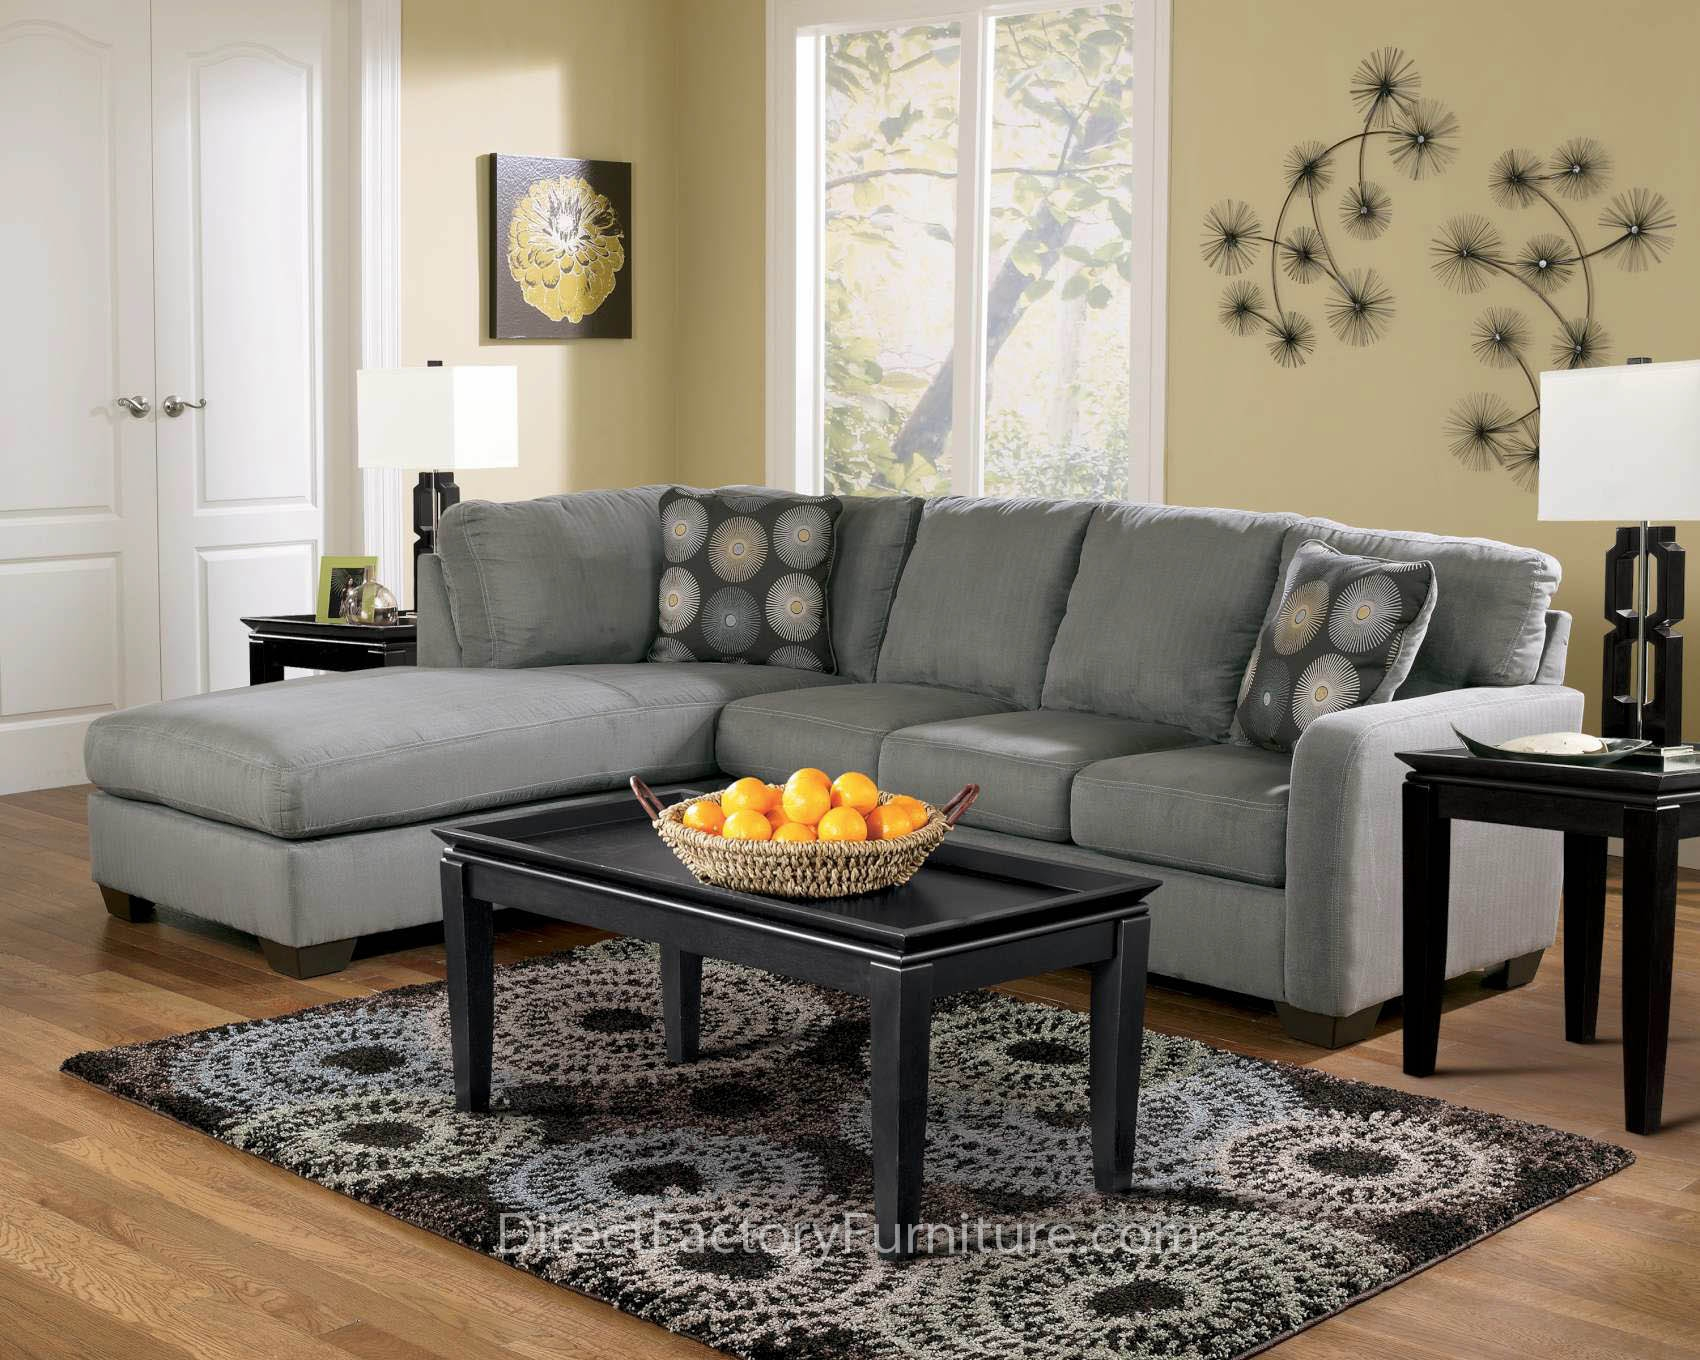 Charming L Shaped Cheap Sectional Sofas In Light Slate Grey On Wooden Floor  Plus Cushion And